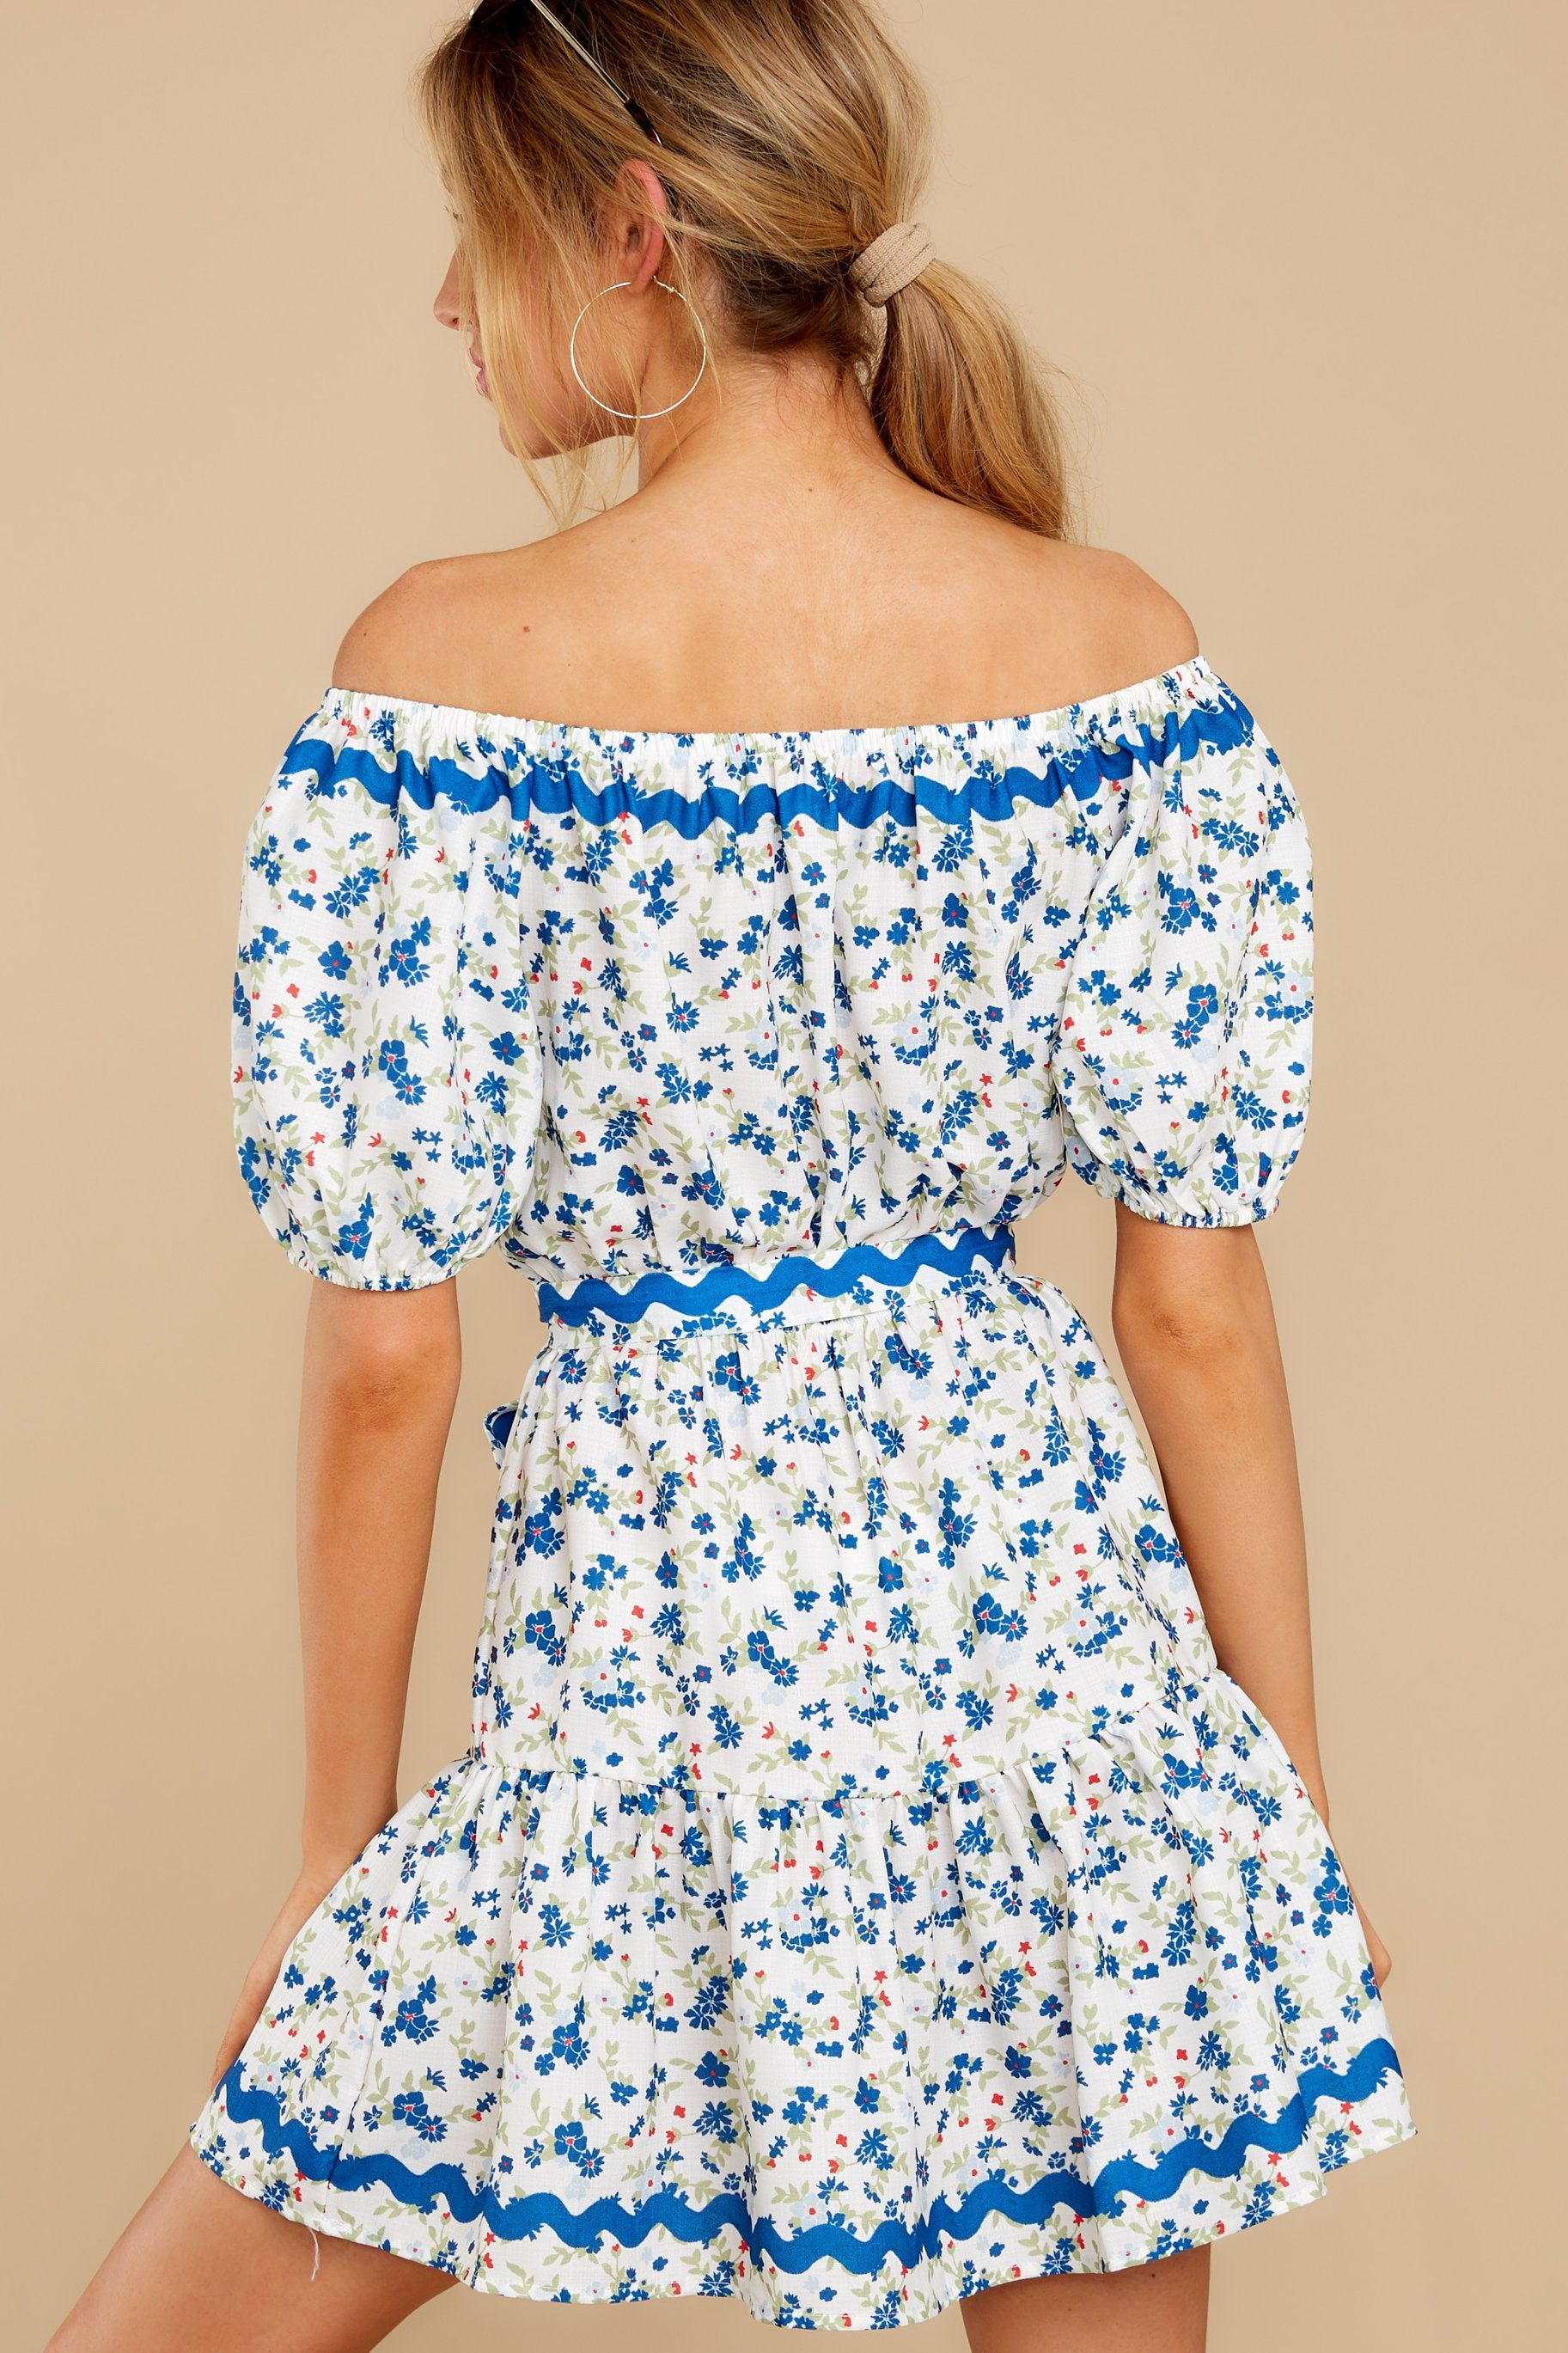 8 Happy About It Blue Floral Print Off The Shoulder Dress at reddress.com